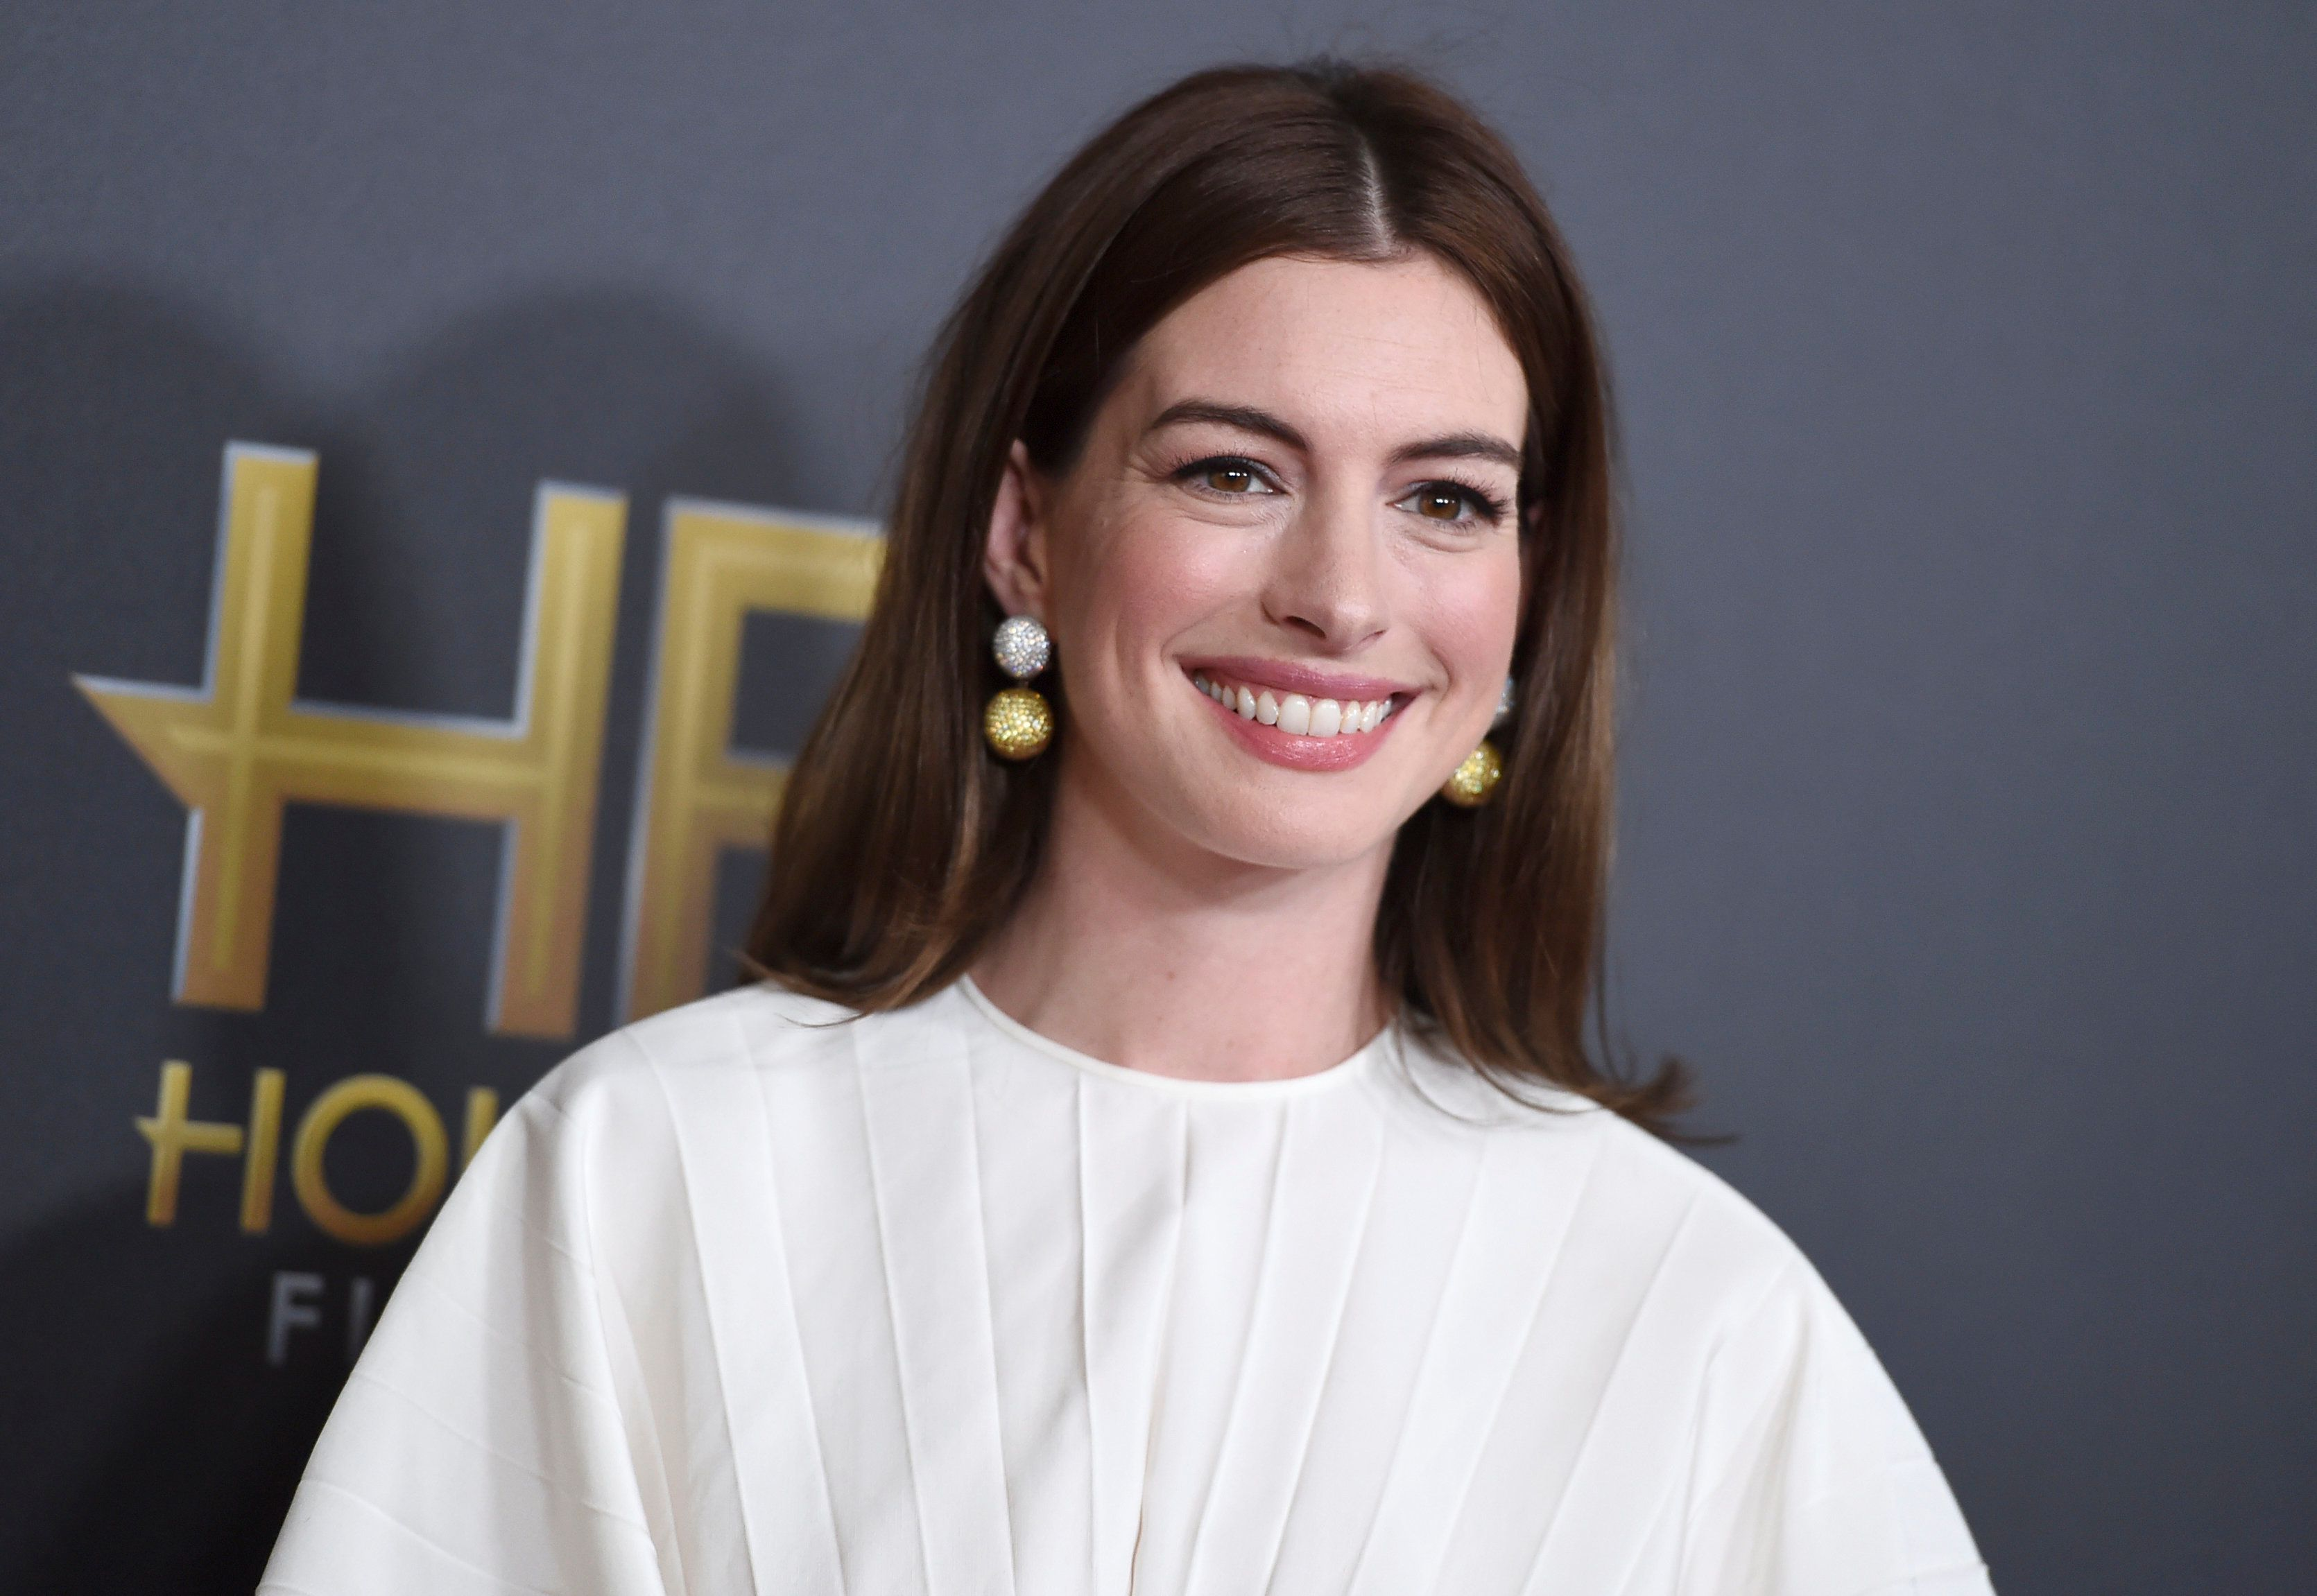 Anne Hathaway arrives at the Hollywood Film Awards on Sunday, Nov. 4, 2018, at the Beverly Hilton Hotel in Beverly Hills, Calif. (Photo by Jordan Strauss/Invision/AP)